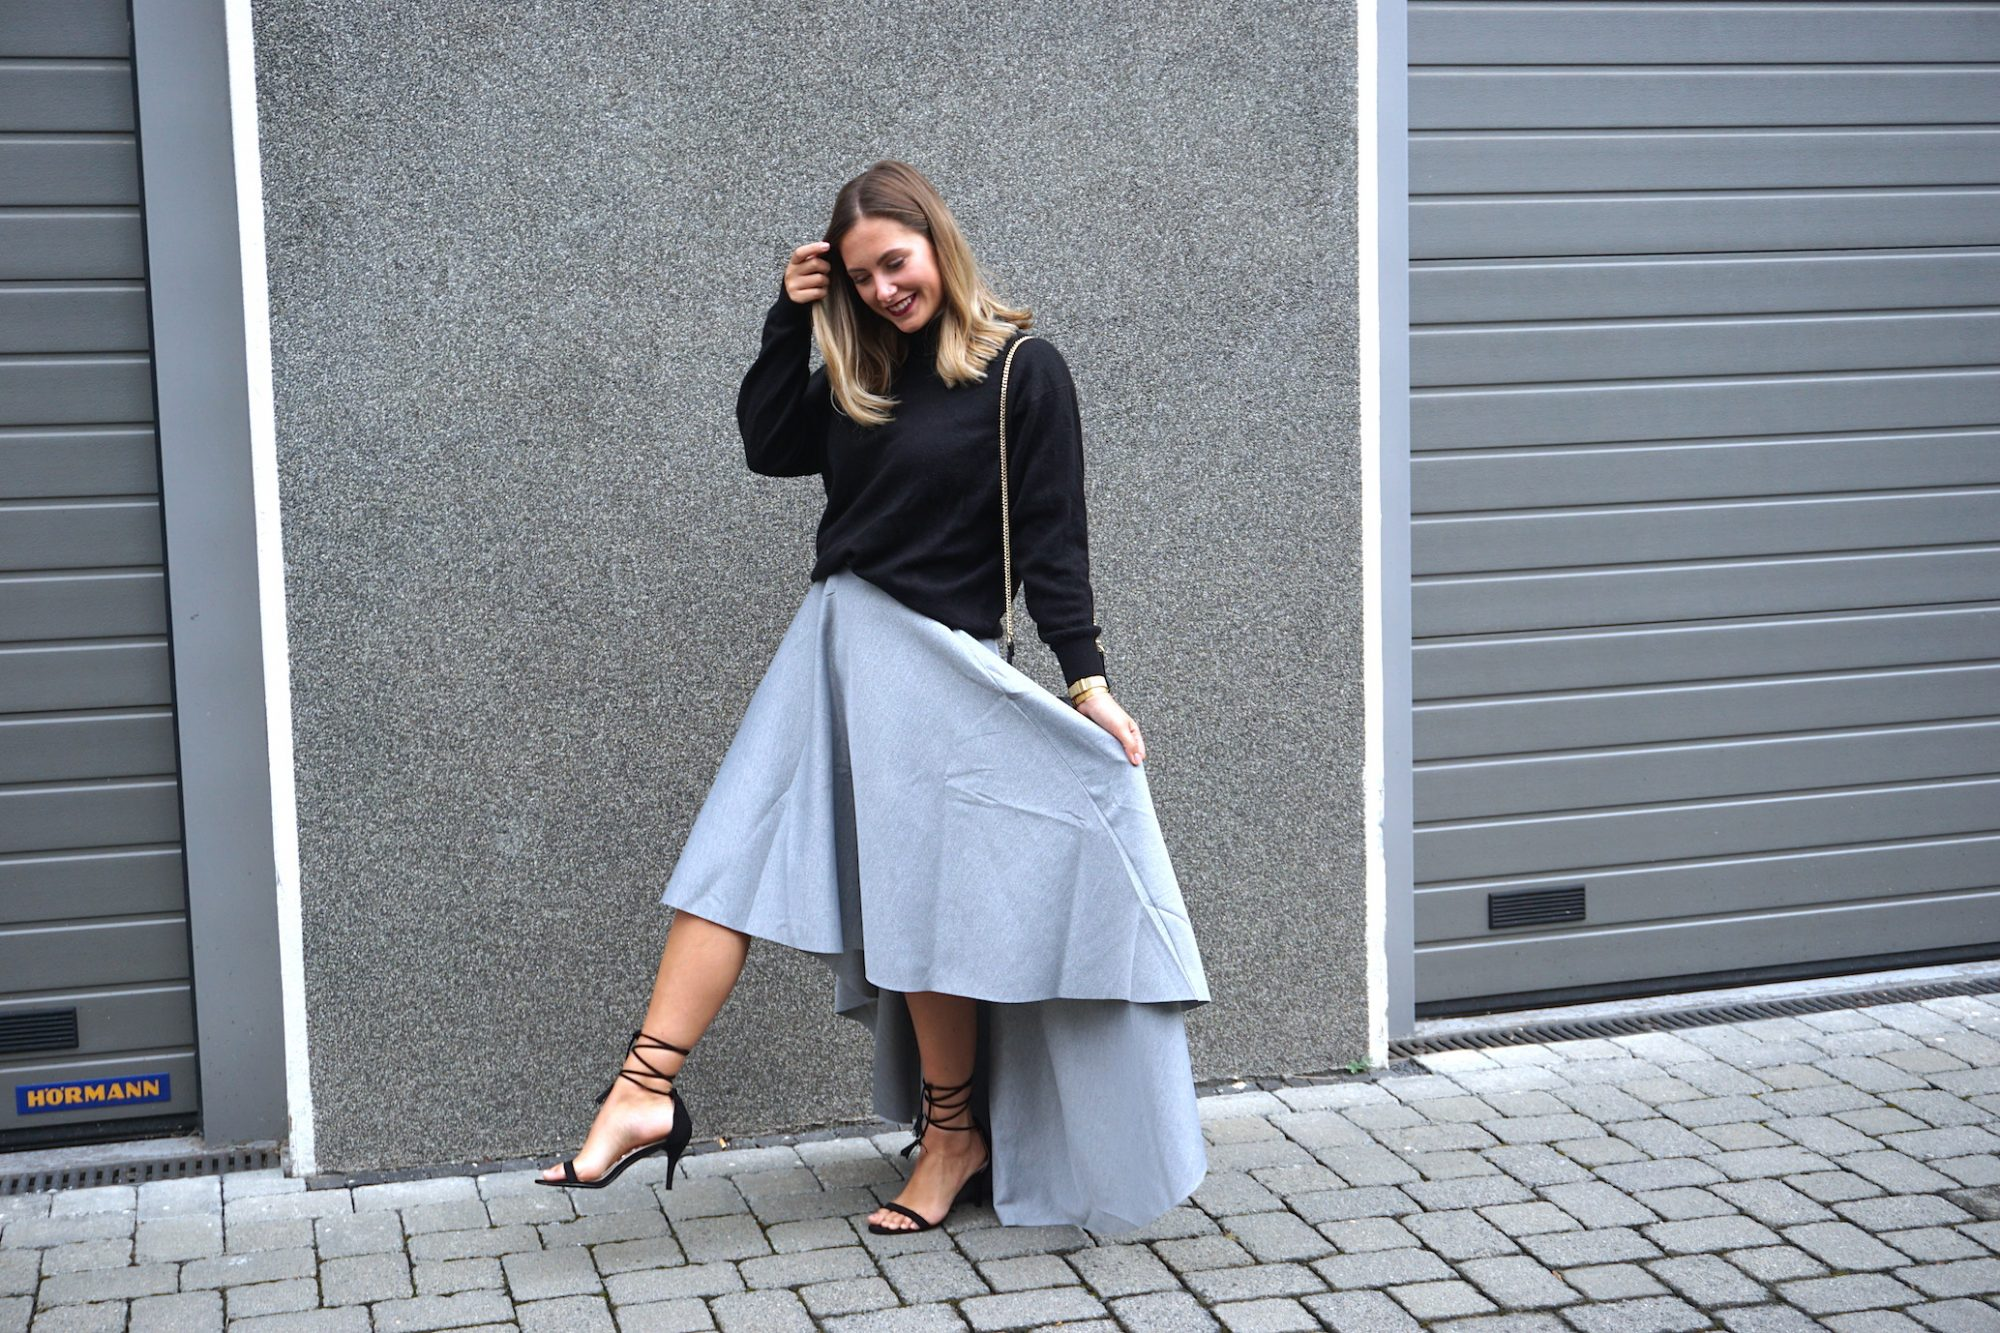 fashionblogger-cologne-modeblogger-koeln-outfit-look-nakd-rock-herbst